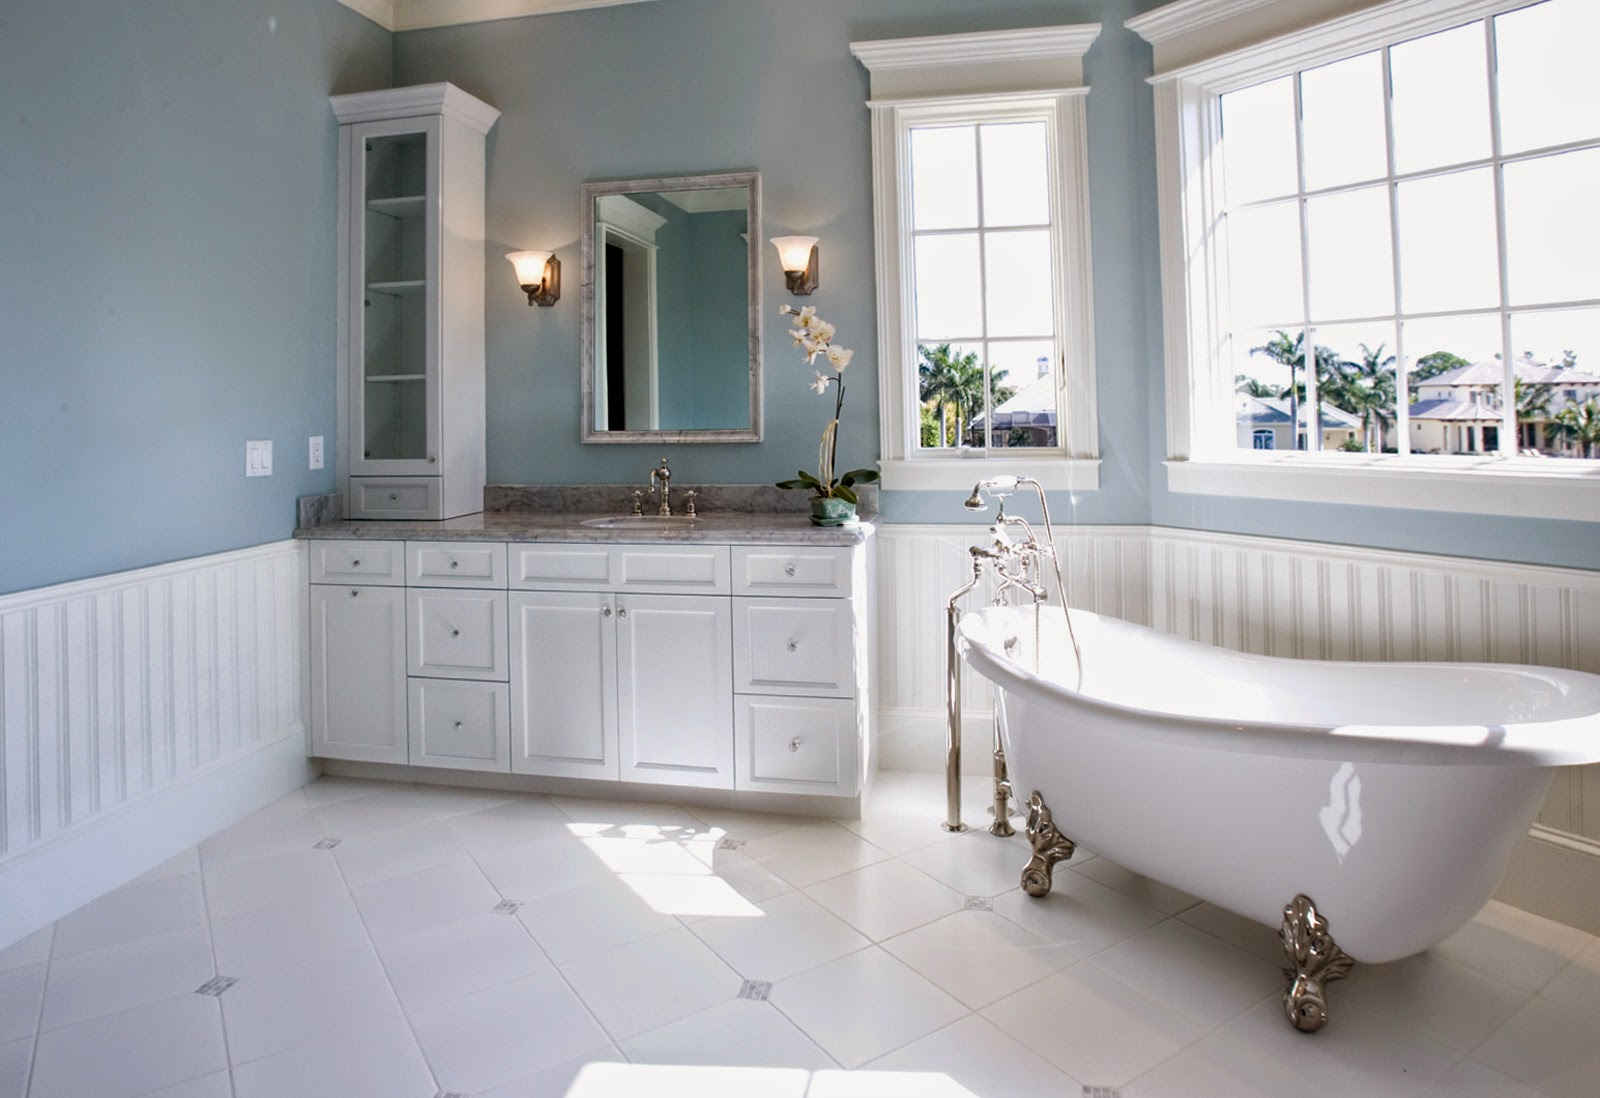 Top 10 beautiful bathroom design 2014 home interior blog for The best bathroom design